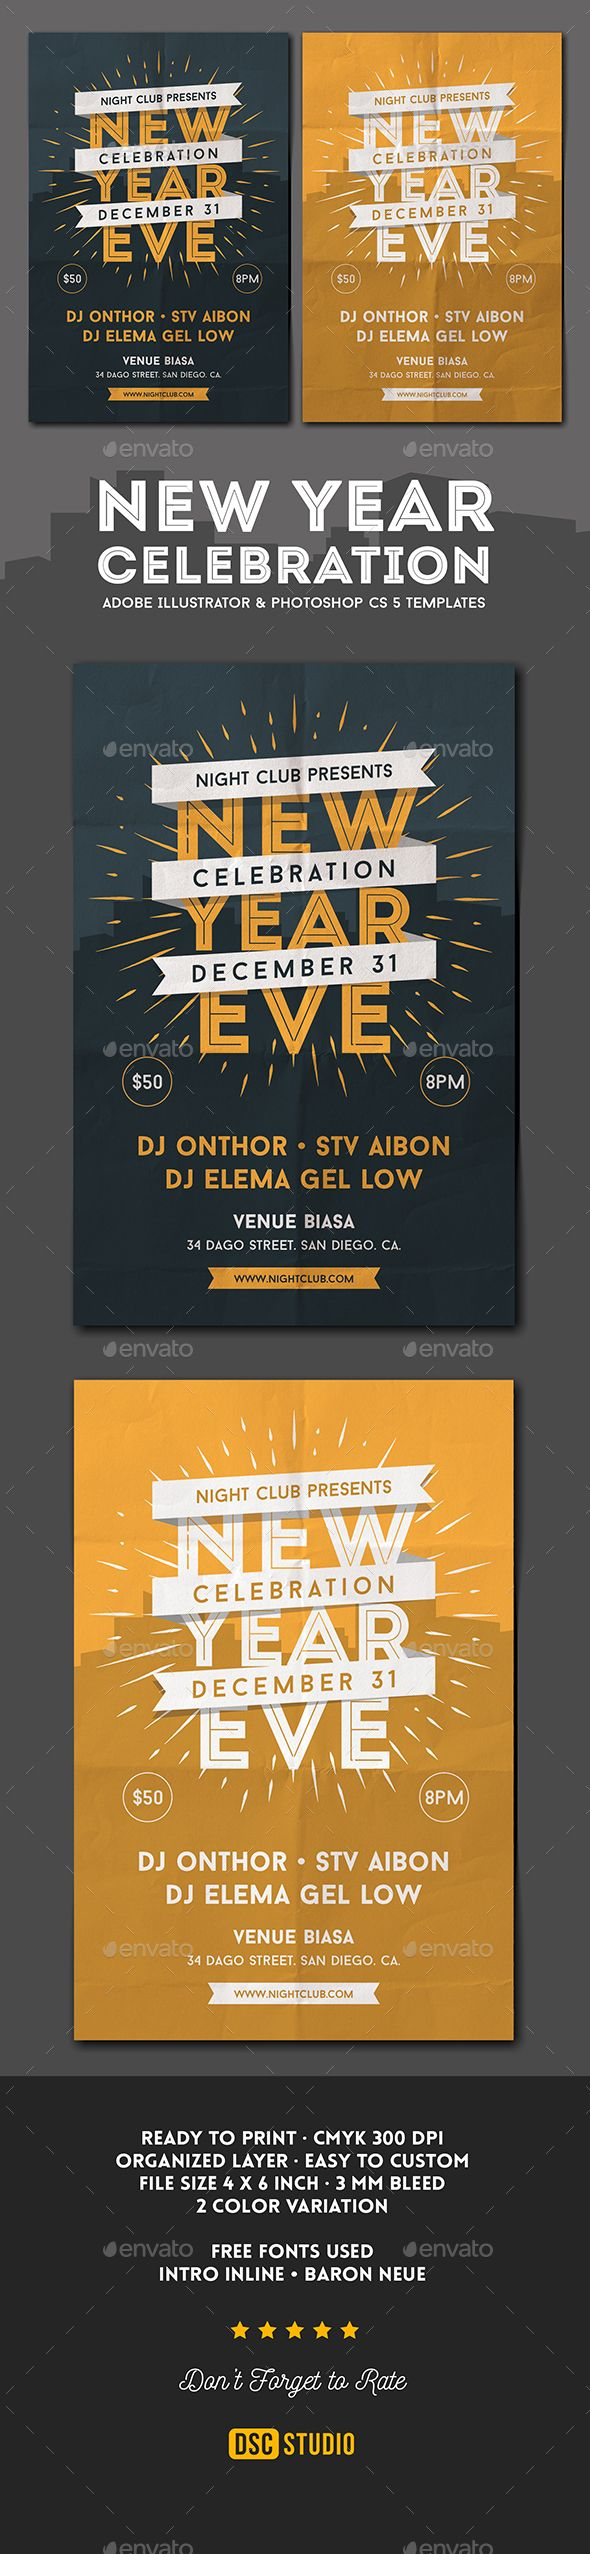 571 best New Year Party Flyer Templates images on Pinterest